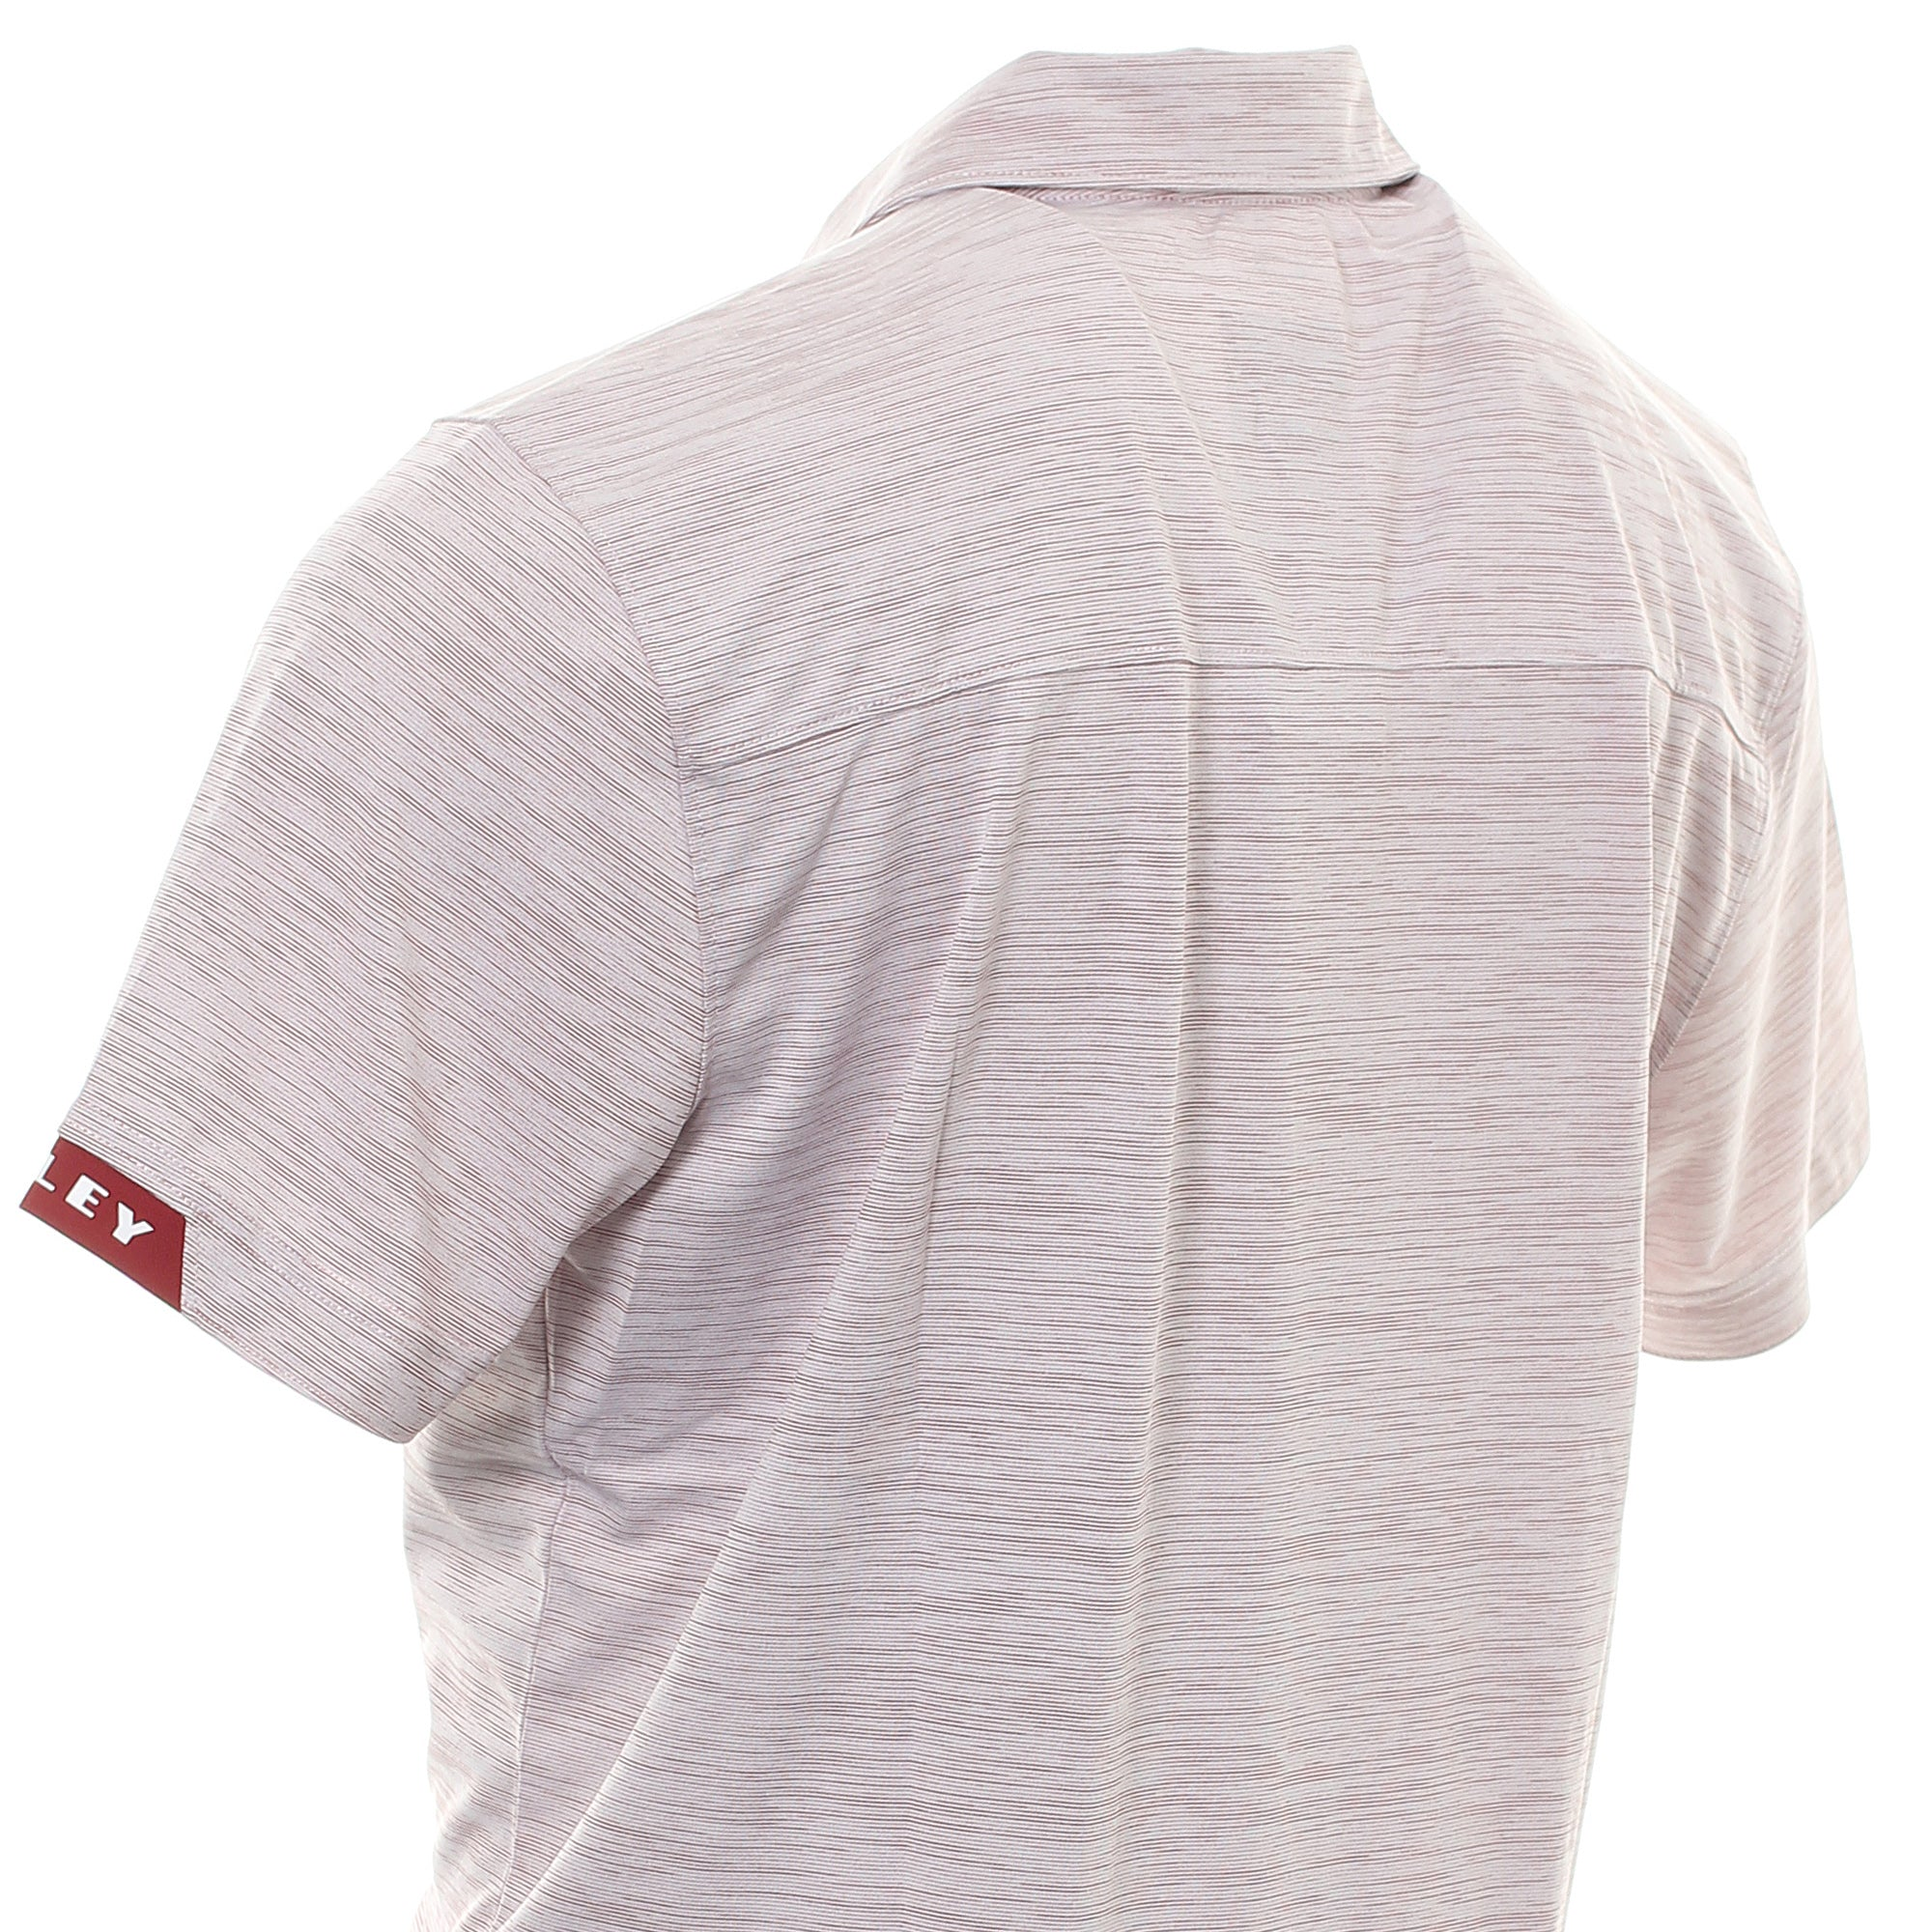 Oakley Golf Gravity Shirt 434158